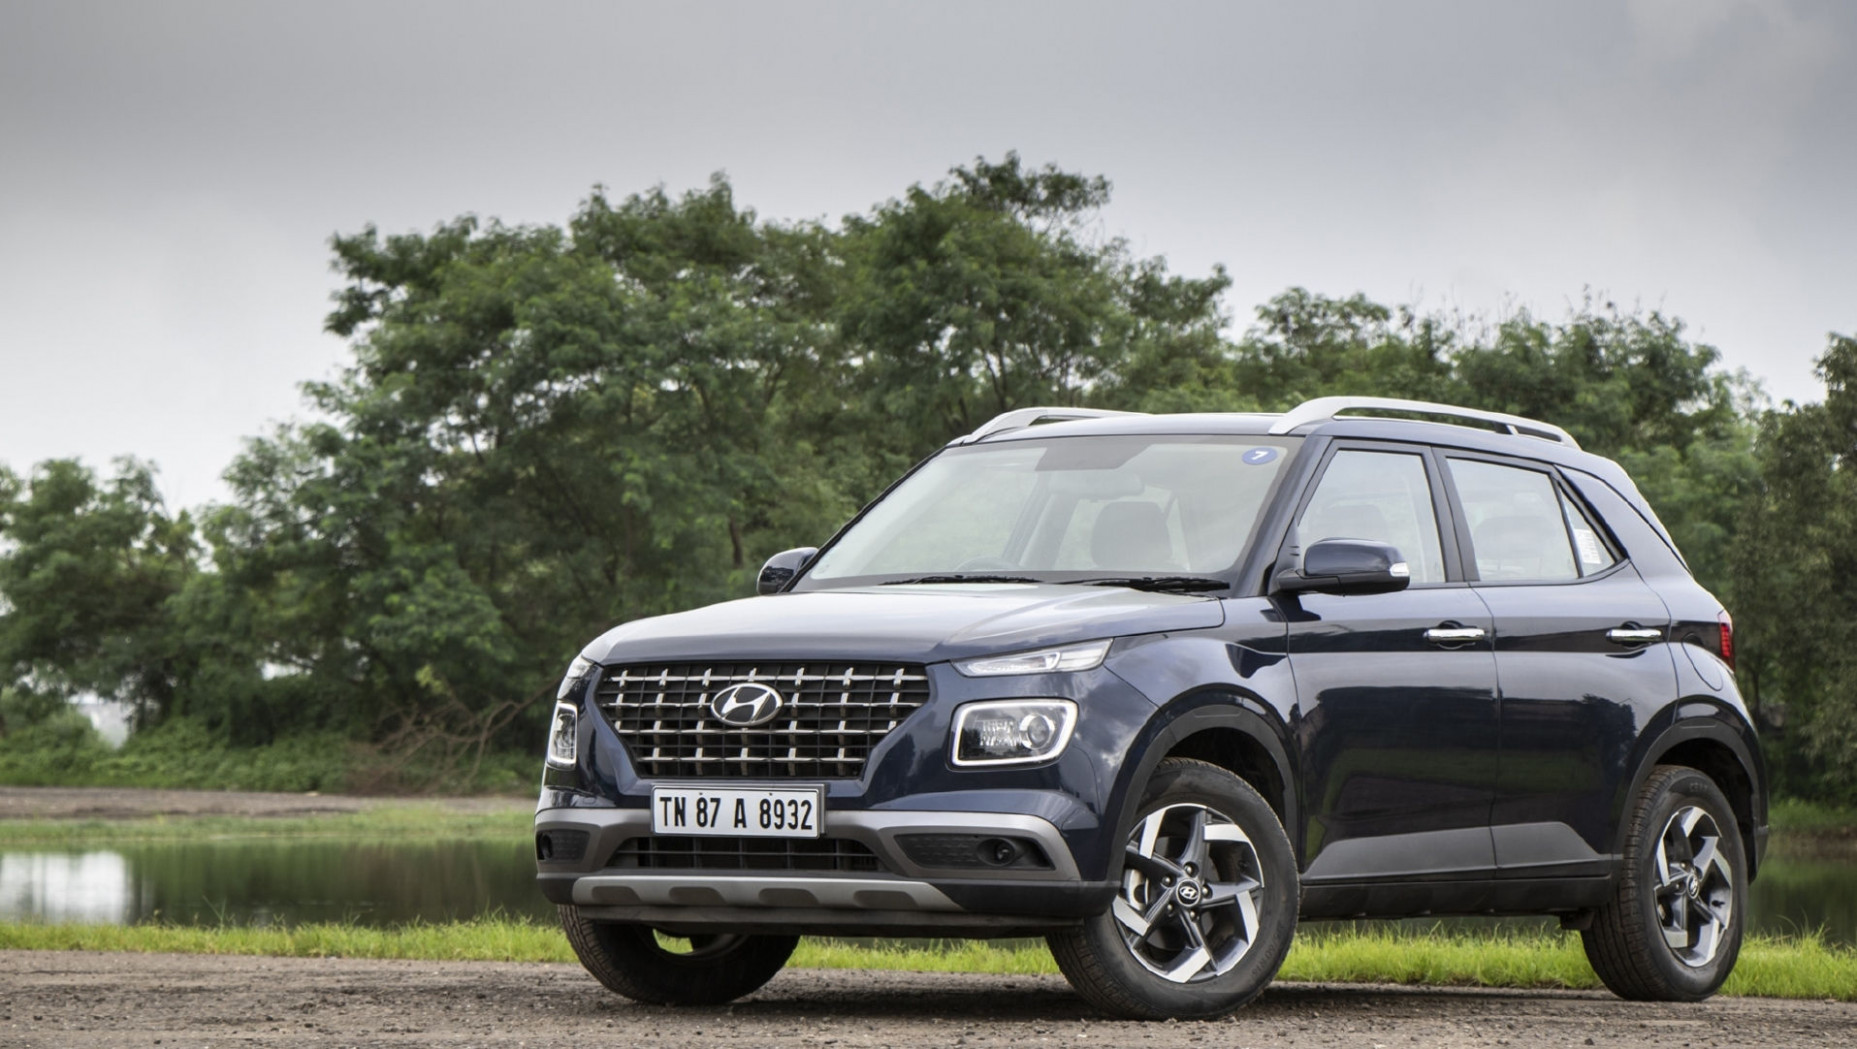 Hyundai Venue 7 Review - Prices, Specs, Variants, Features and ..